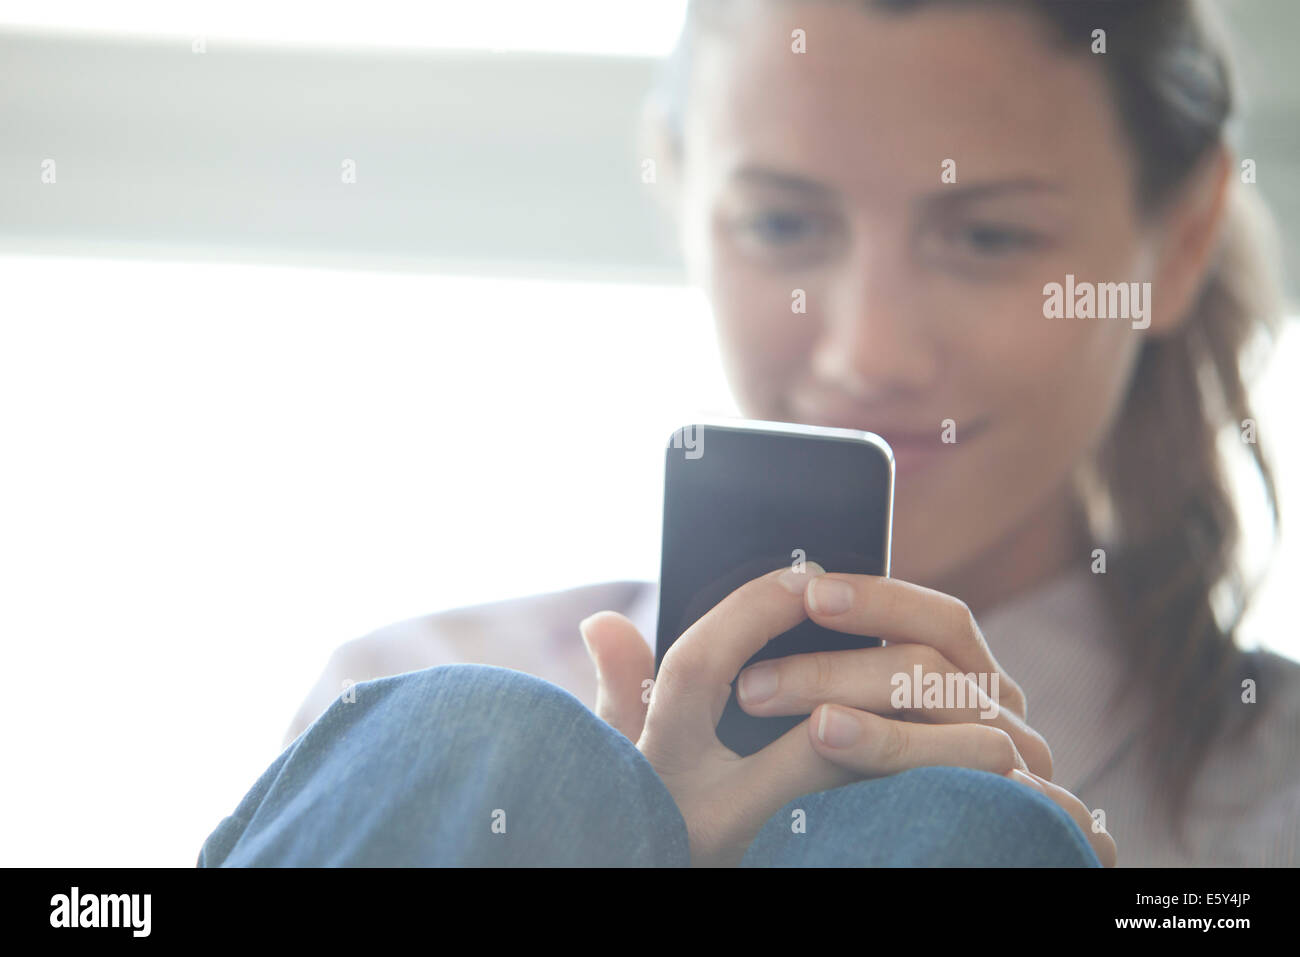 Woman browsing web with smatrphone - Stock Image